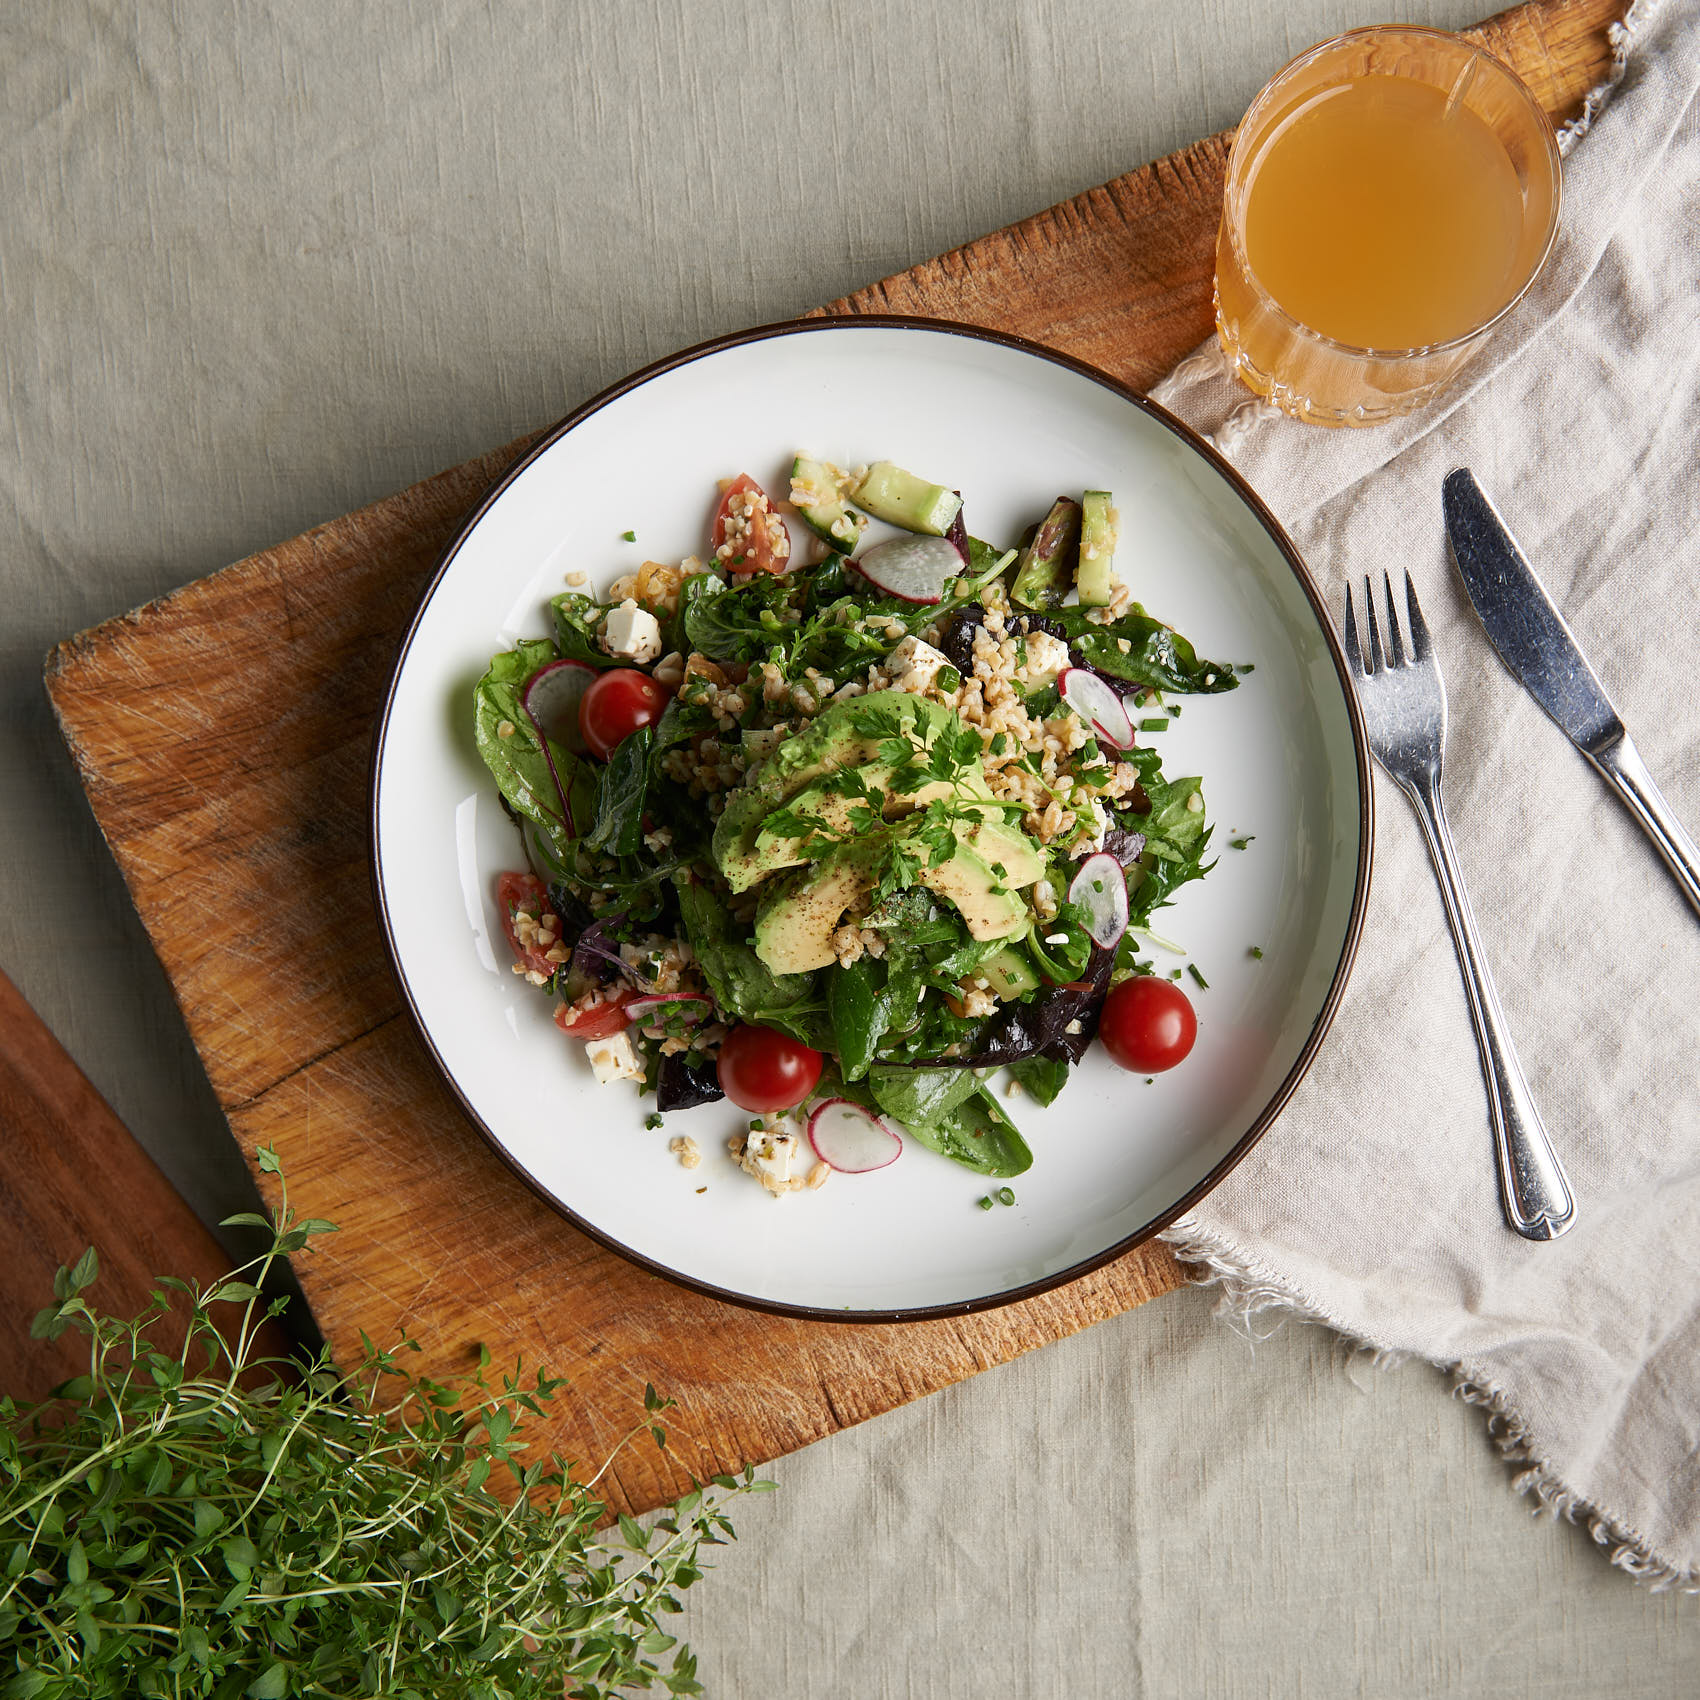 Salad on white linen photo by Marcel Tiedje